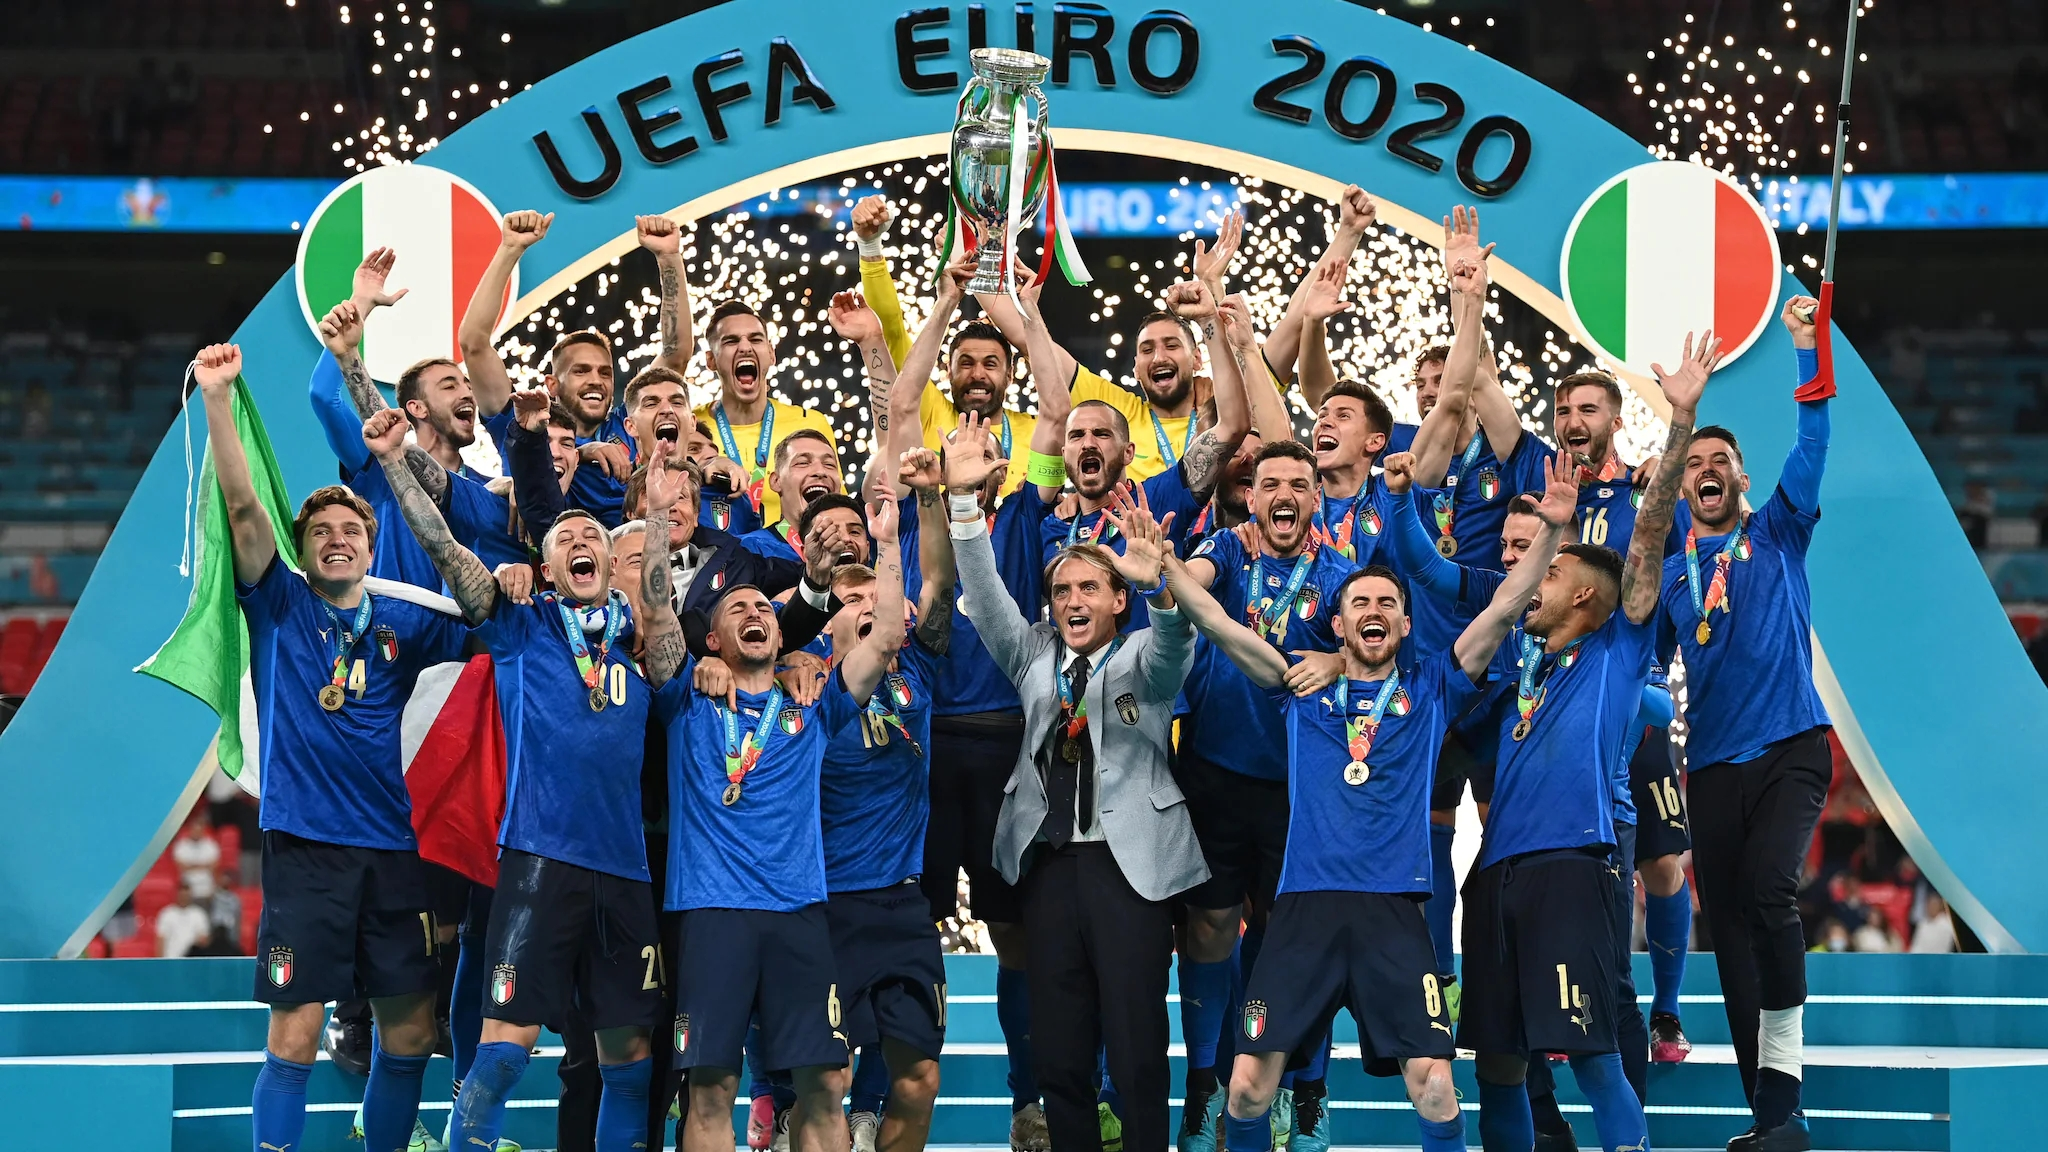 It's coming to Rome!  Italy holds up the trophy